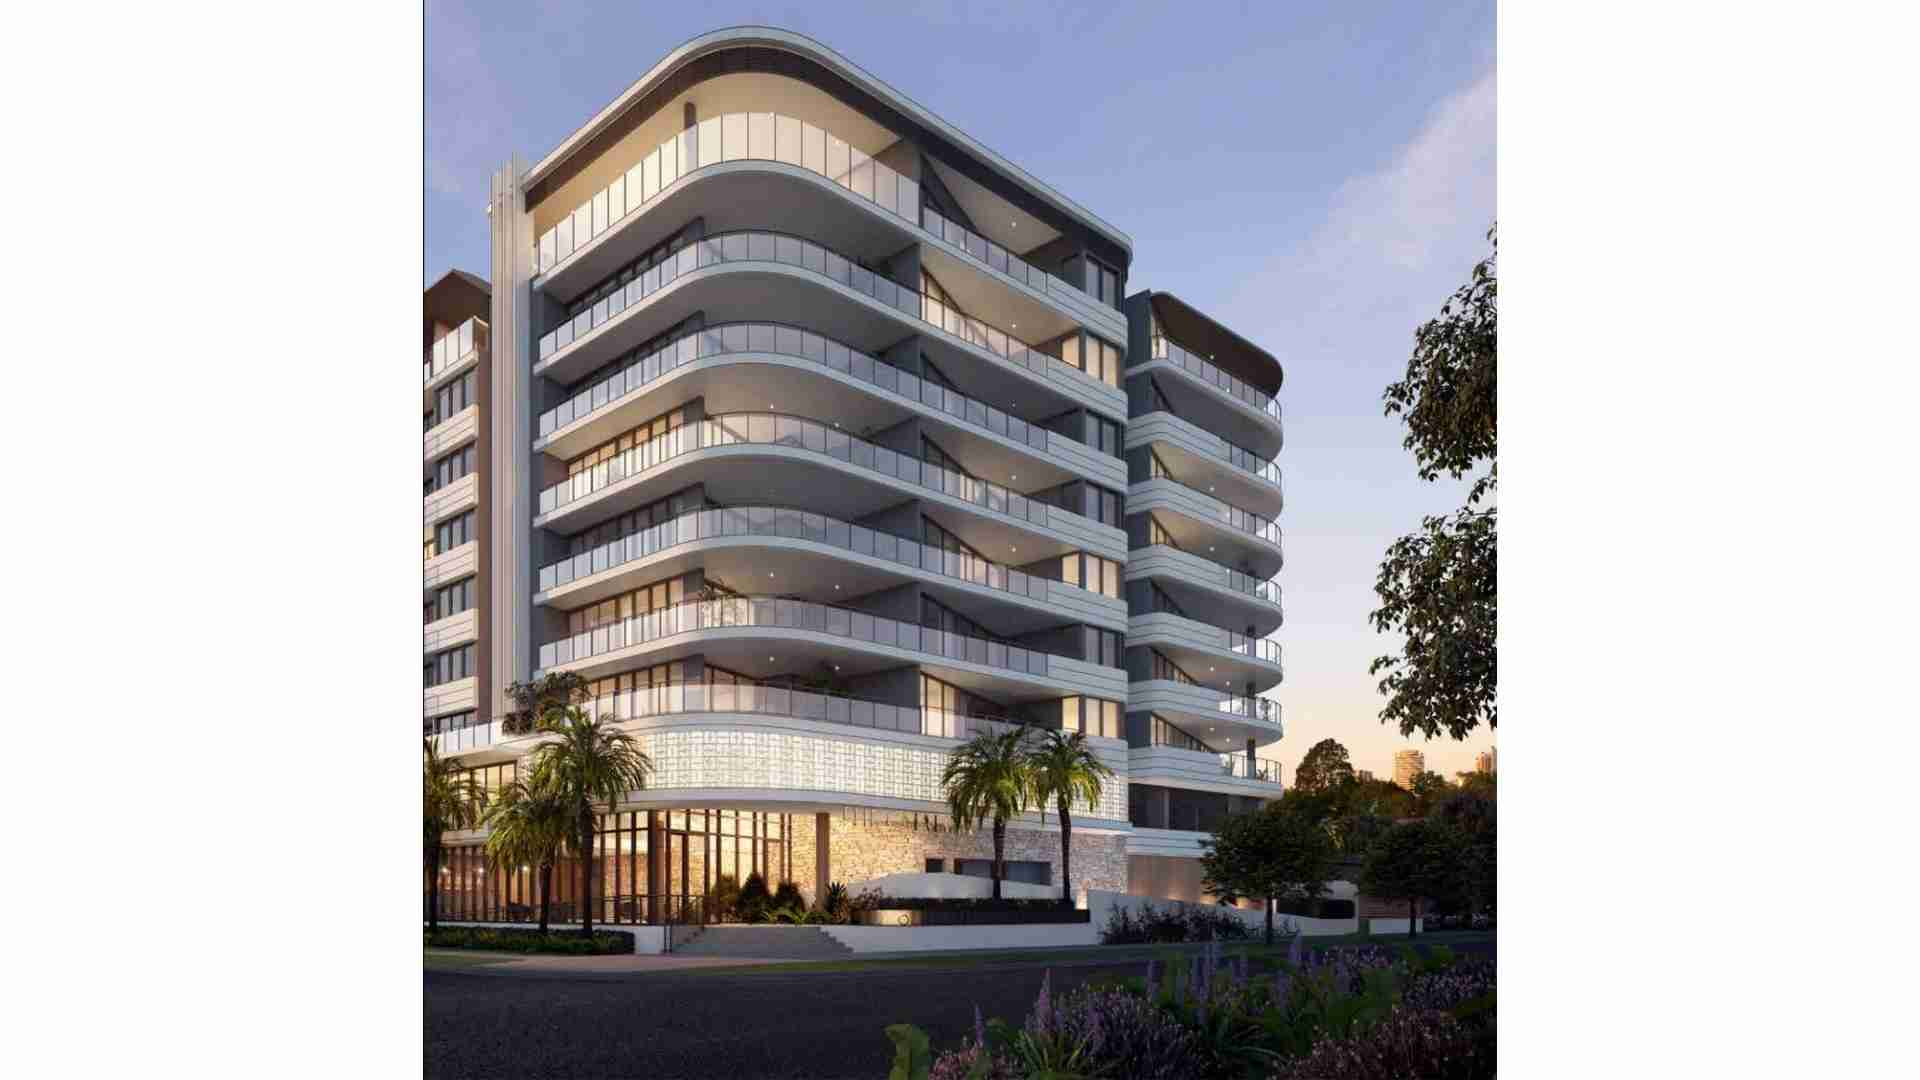 sleek and modern design apartment building on stanhill drive